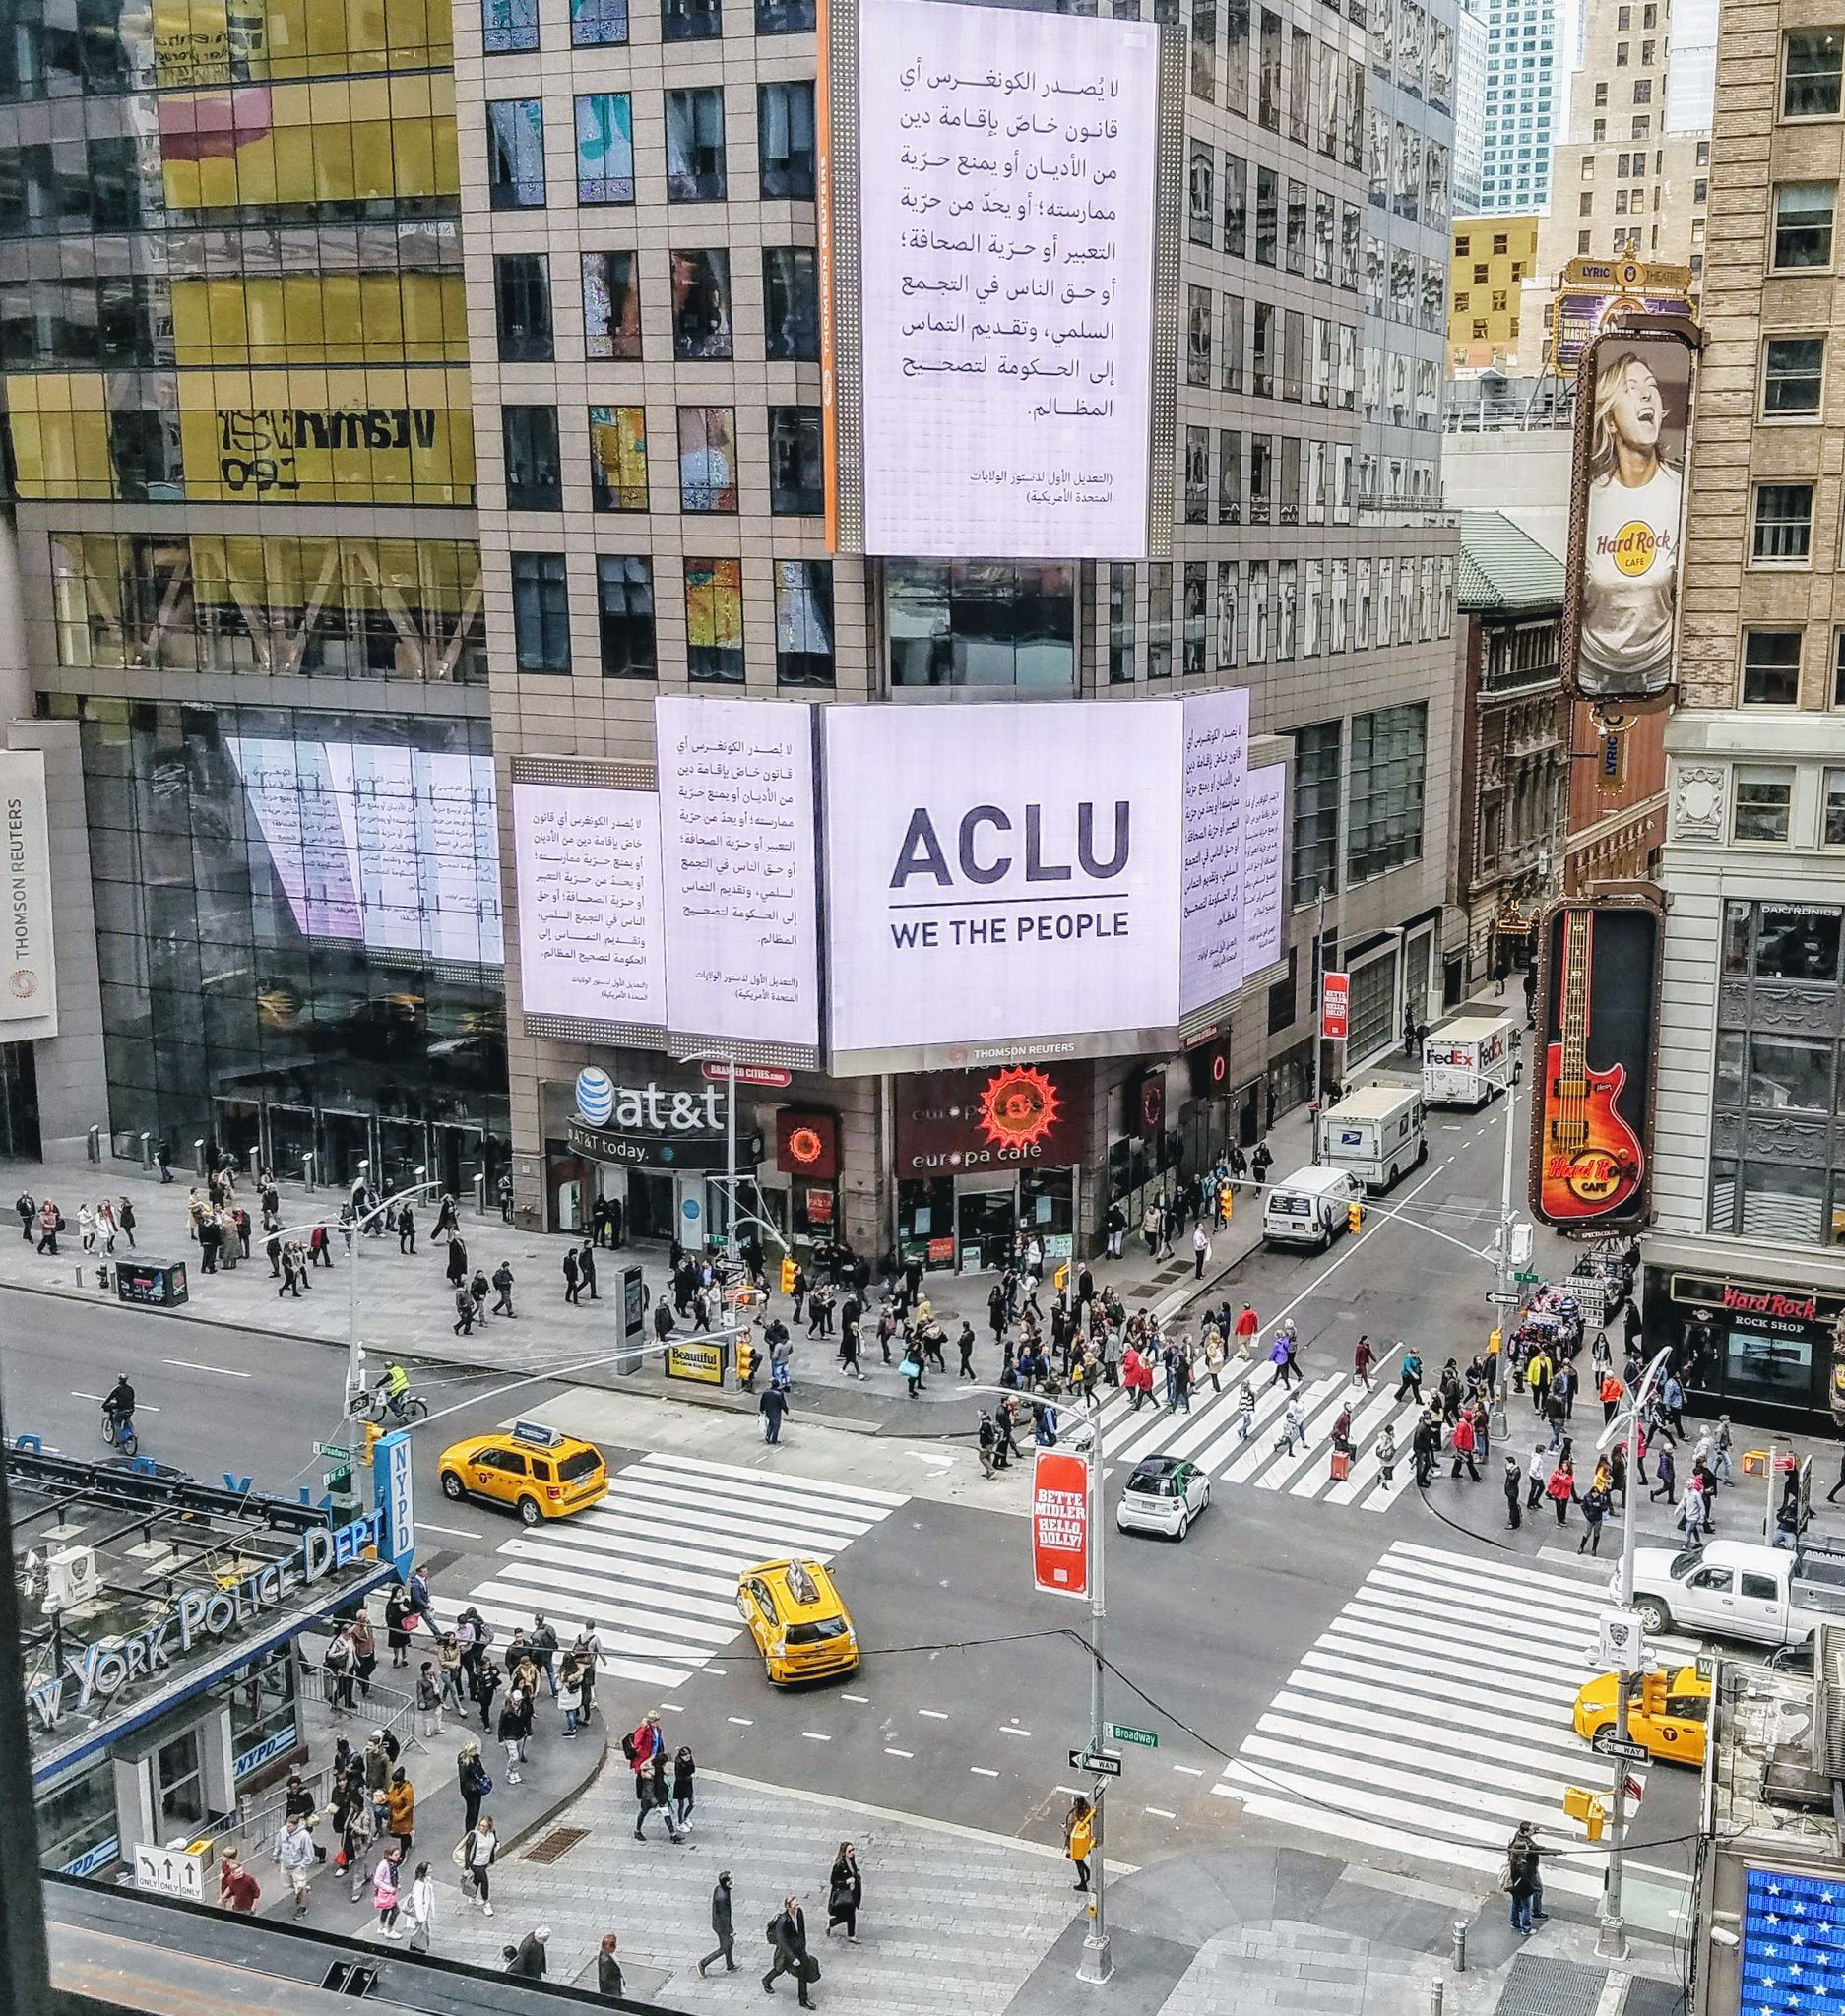 Saw this in Times Square. Good on ya, @ACLU! This is beautiful. :) #WeThePeople #Diversity https://t.co/HMq8Dp80Jy